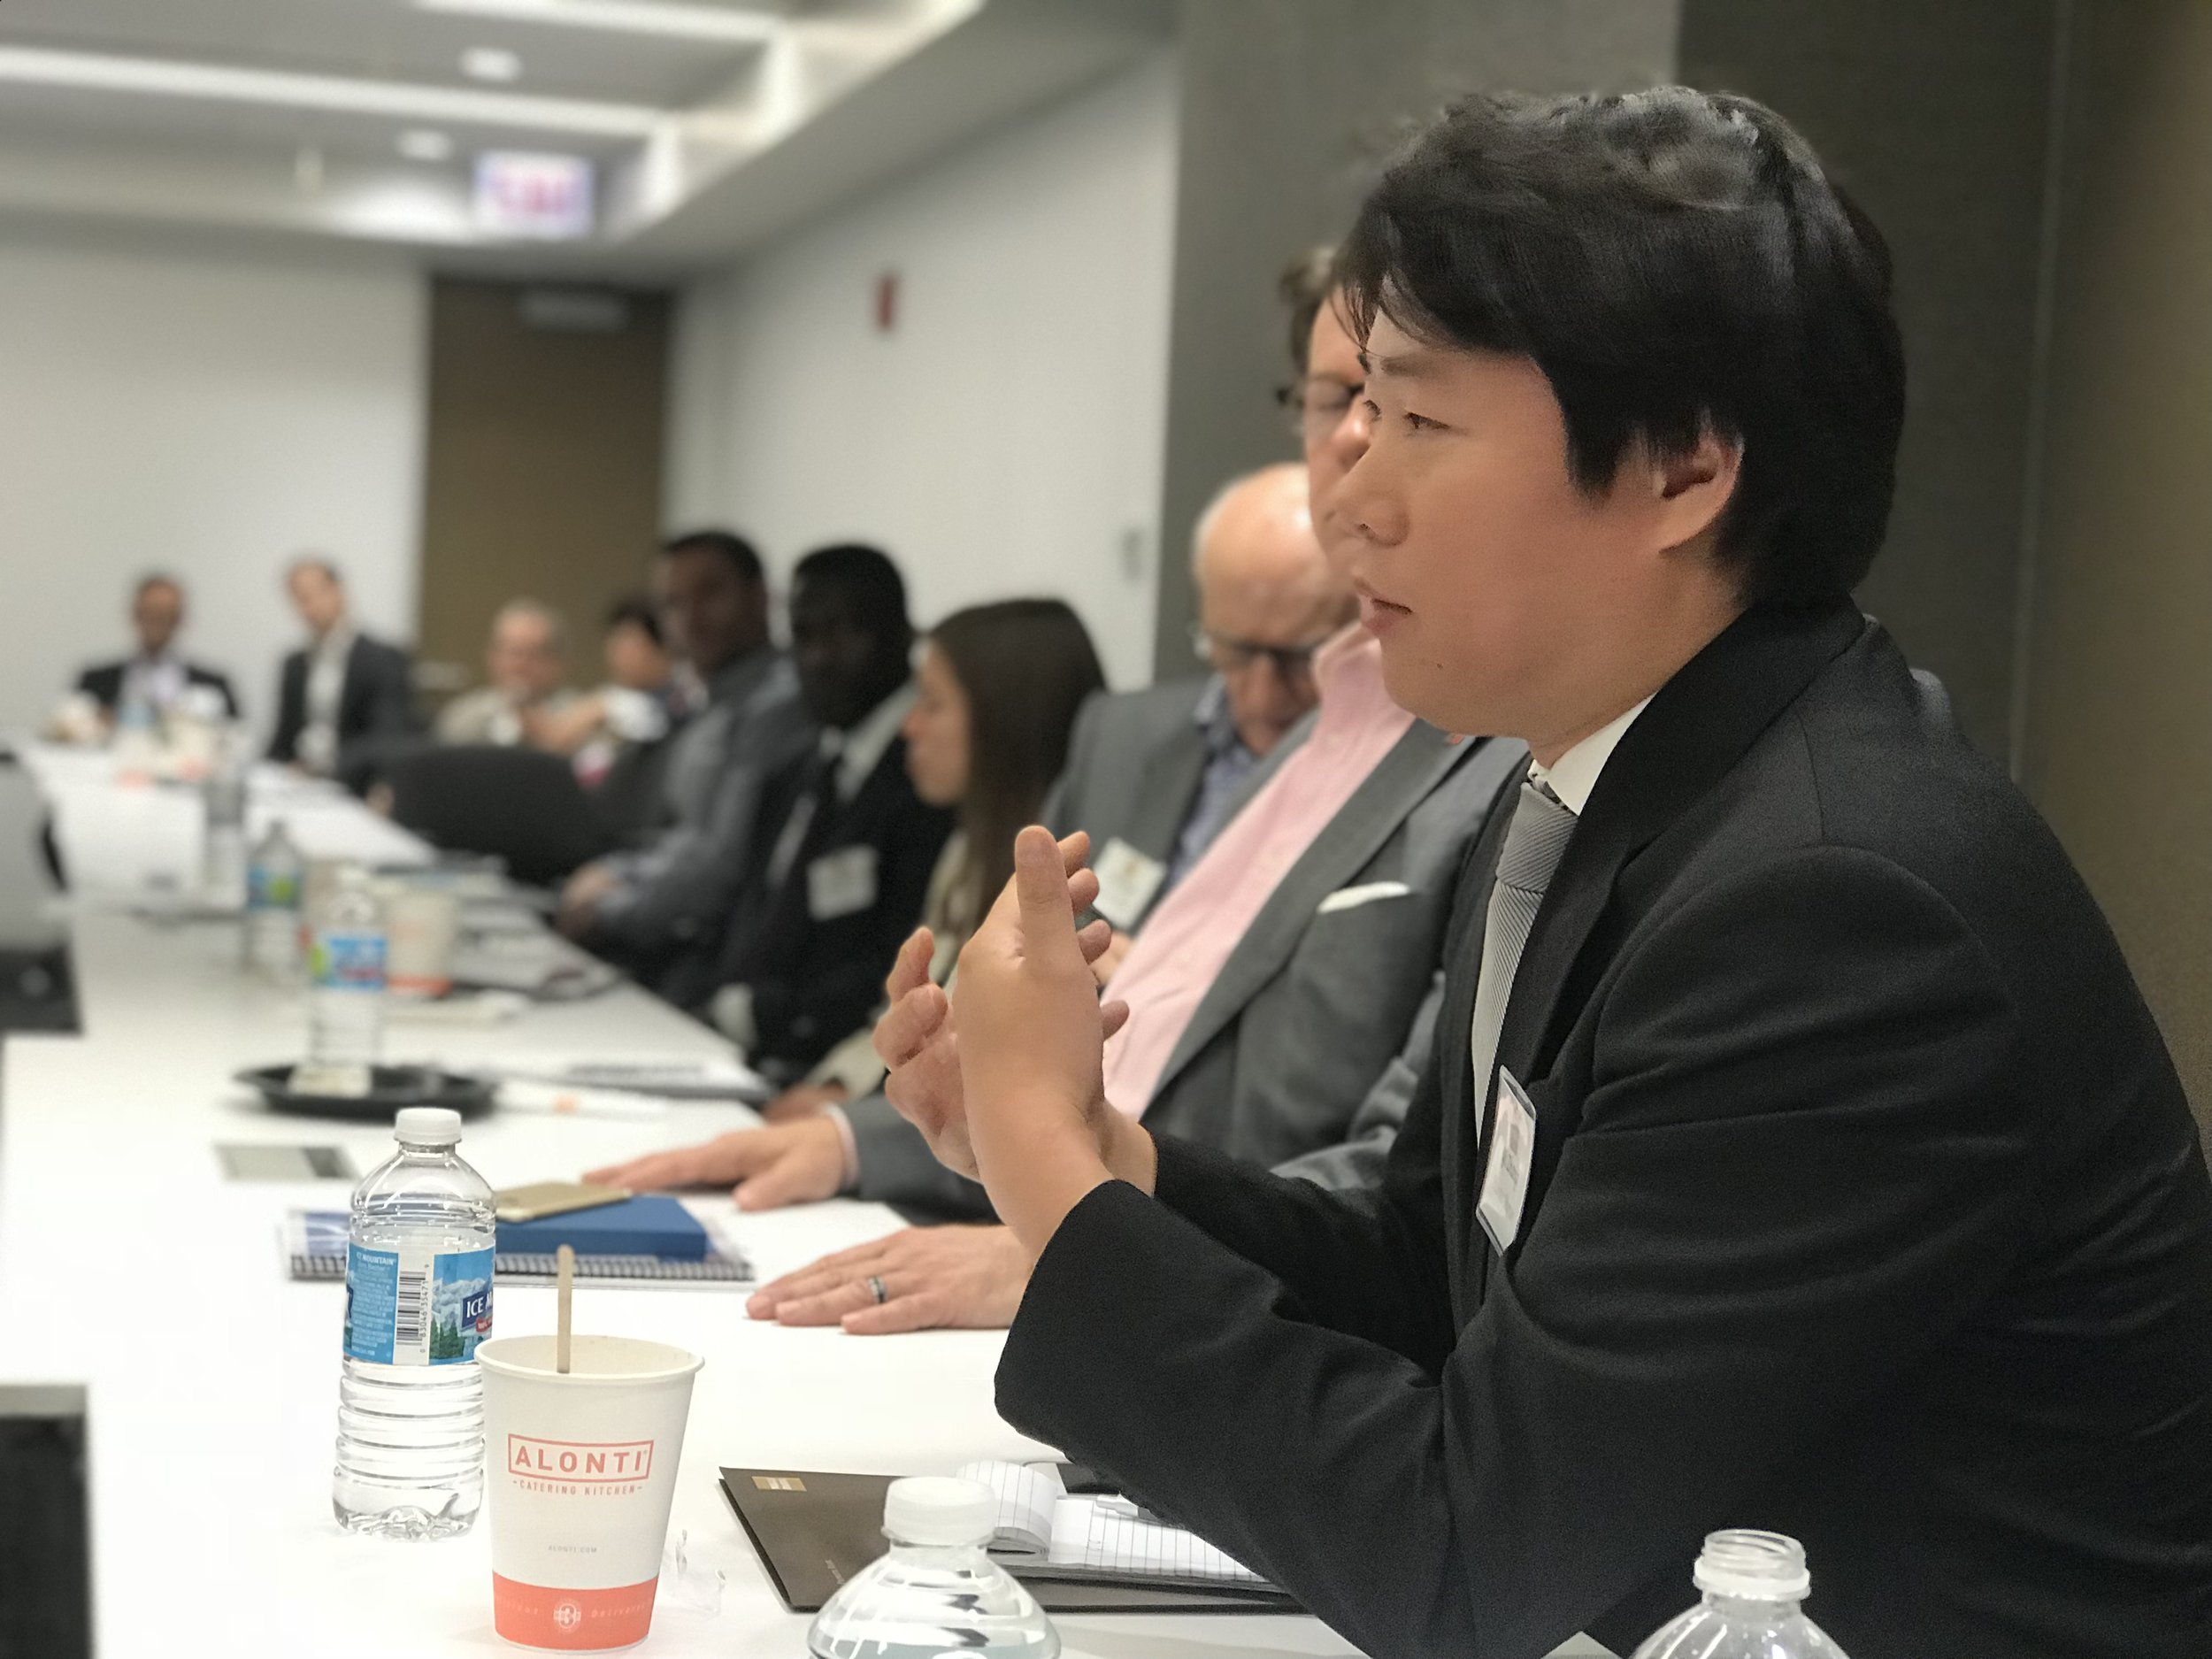 Yi Zhang, Principal of Chinese Business Services for Plante Moran, speaks on assessing potential investments in China (10/11/2018, Mexico-China Trade Relations).